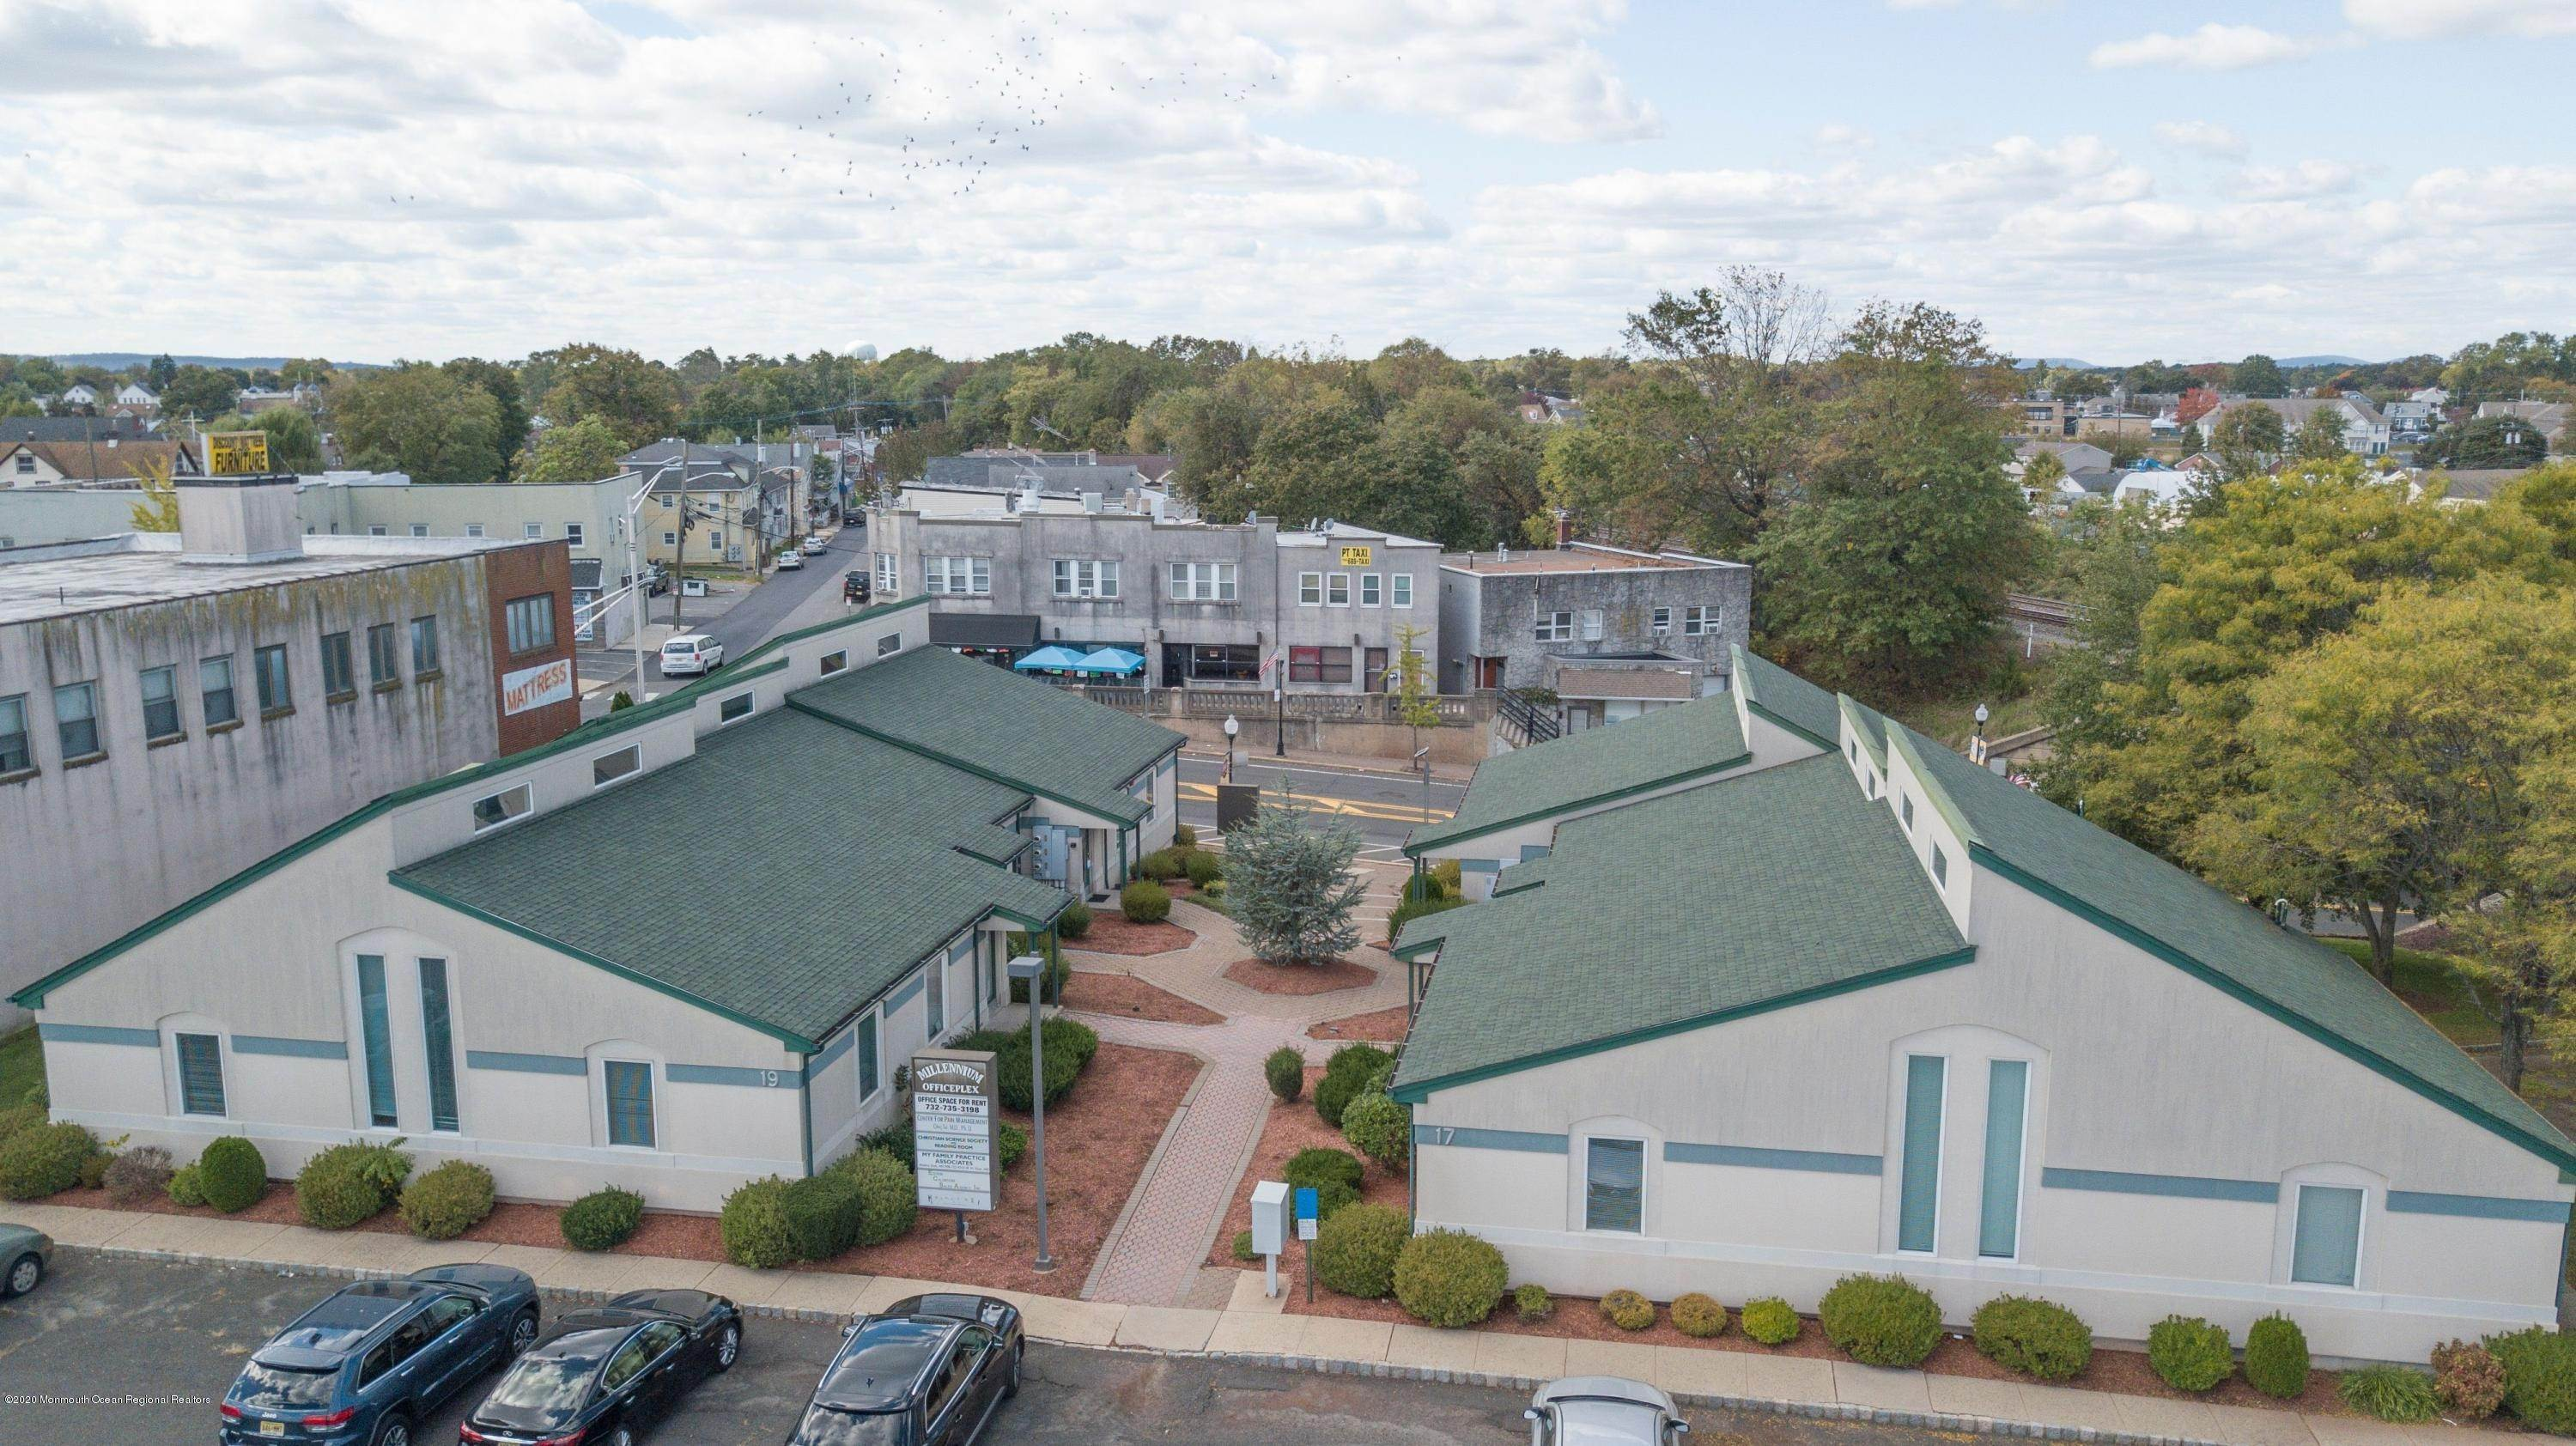 Commercial / Office for Sale at 3 Main Street Manville, New Jersey, 08835 United States